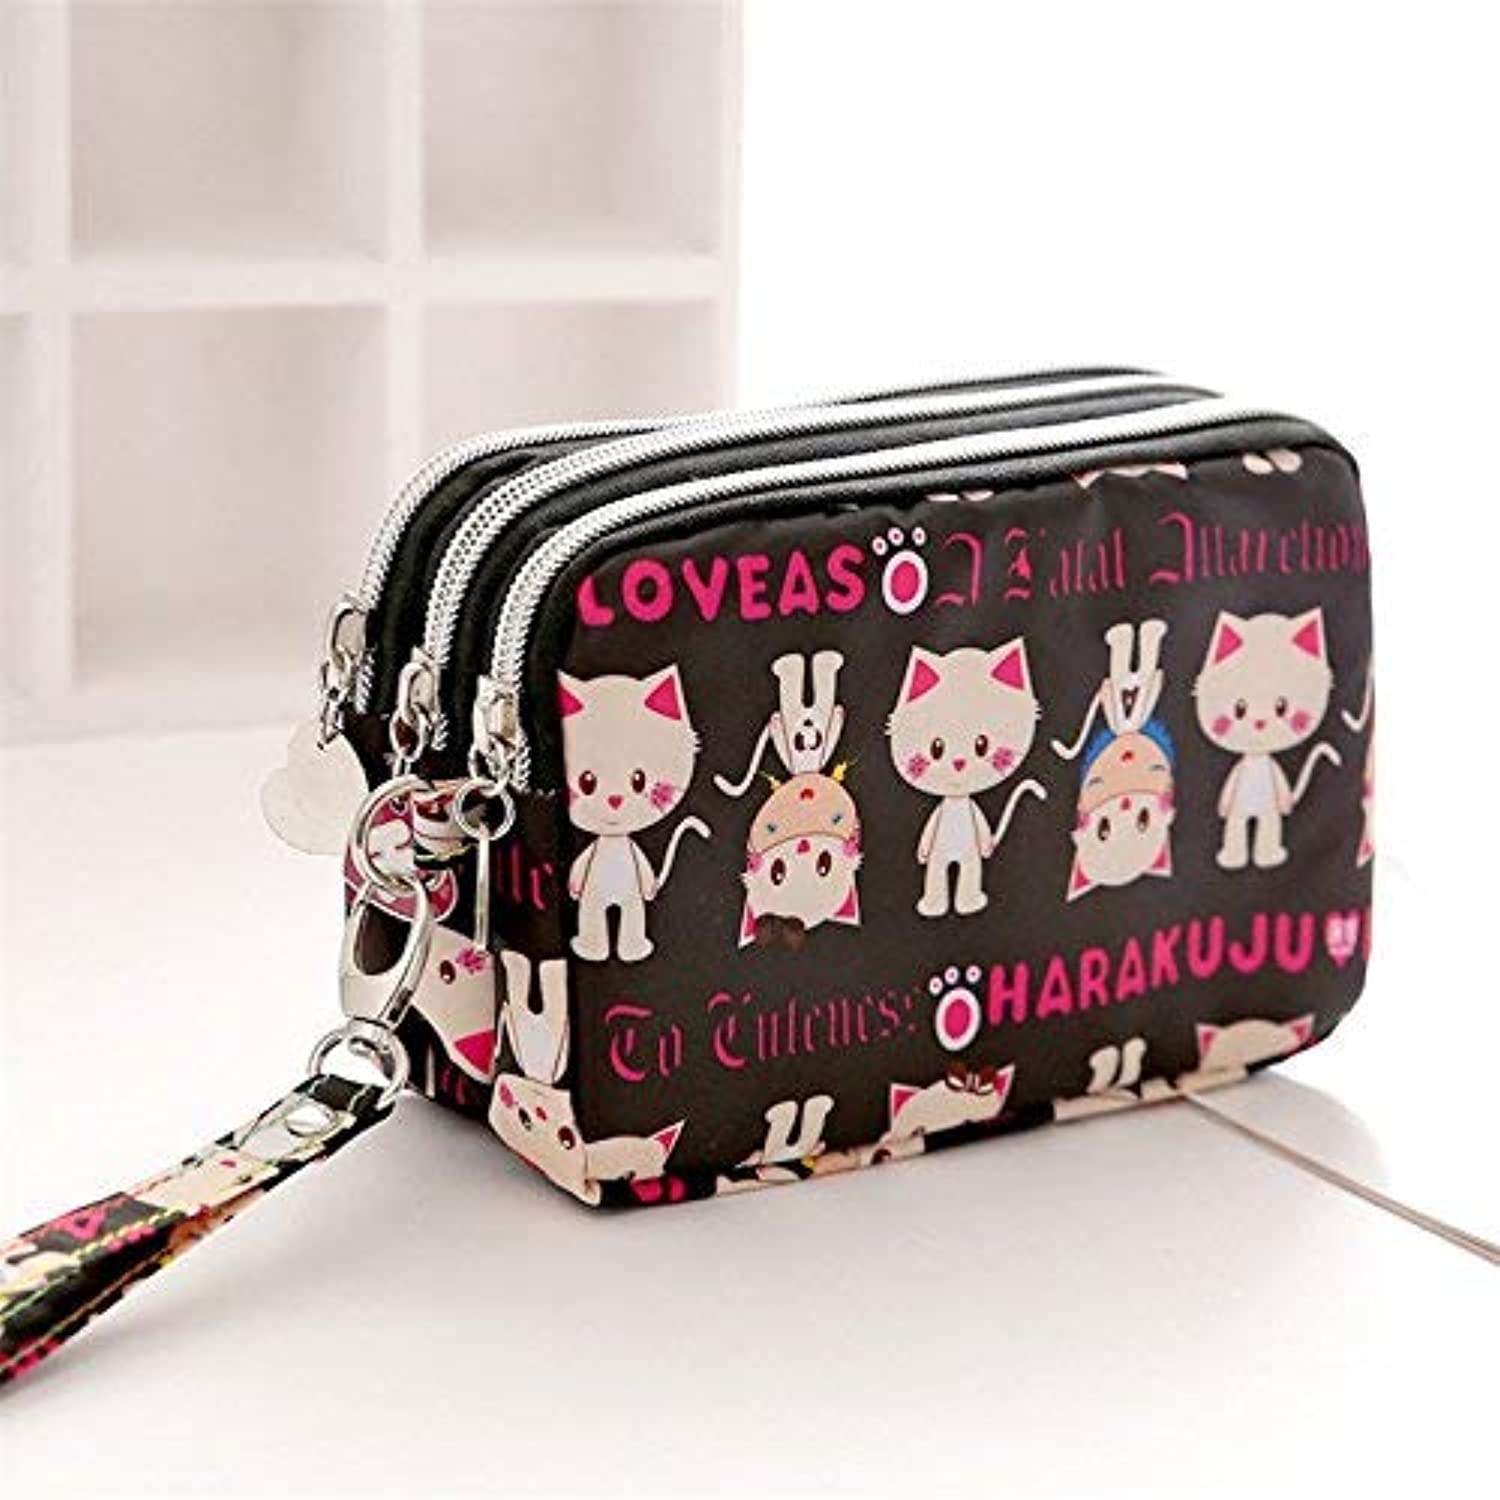 Girls Purse Small Bag Satchel Bag Mobile Phone Bag Three Zipper Large Capacity Zero Wallet Mini Mobile Phone Bag (color   Black cat)